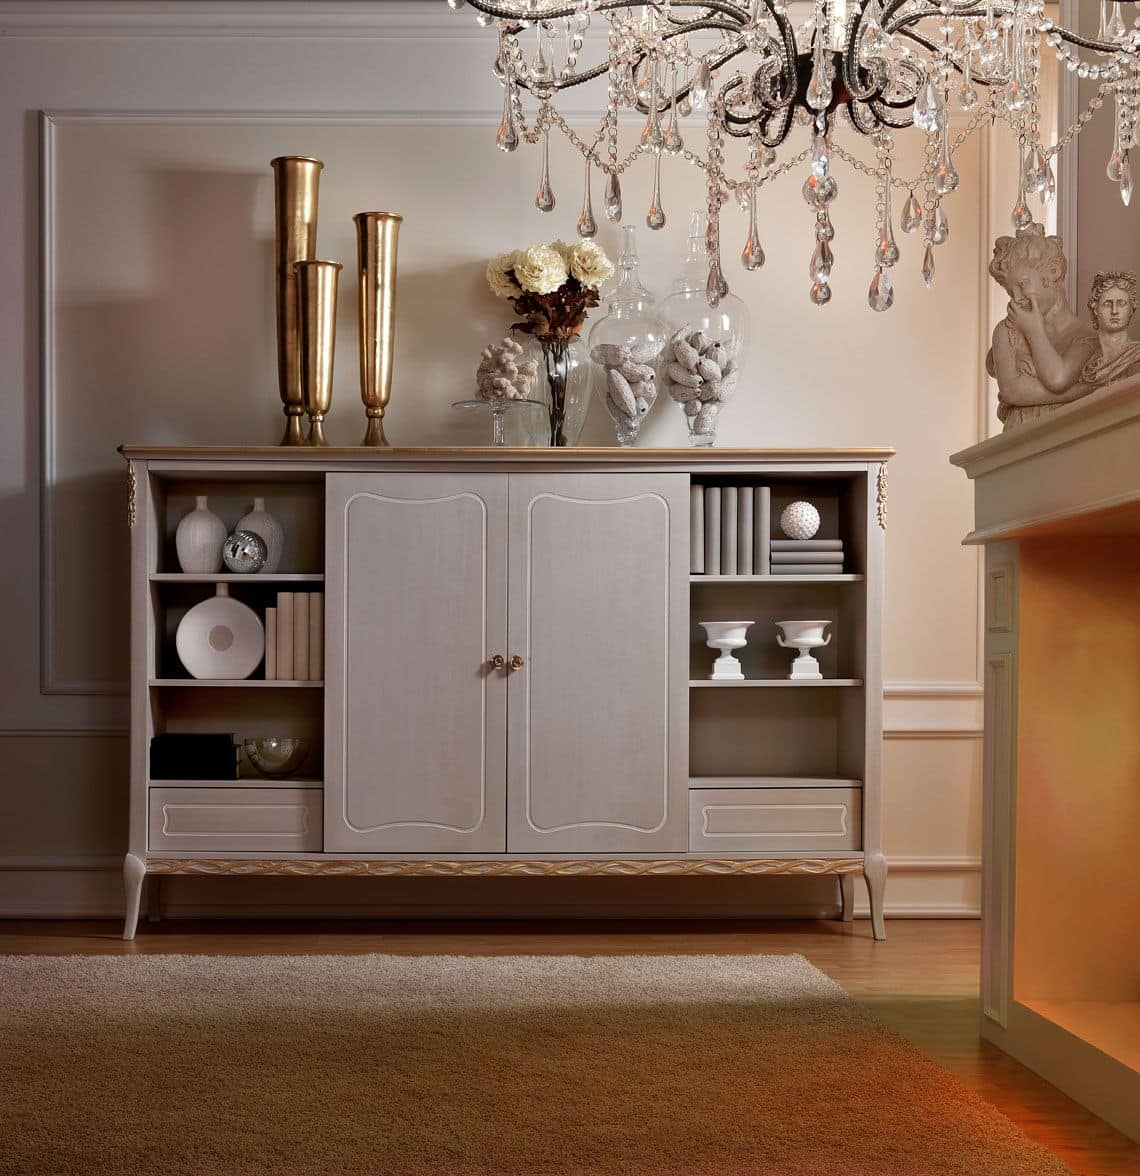 Live 5309 bar cabinet, Wooden bar cabinet, with classic style, for living room